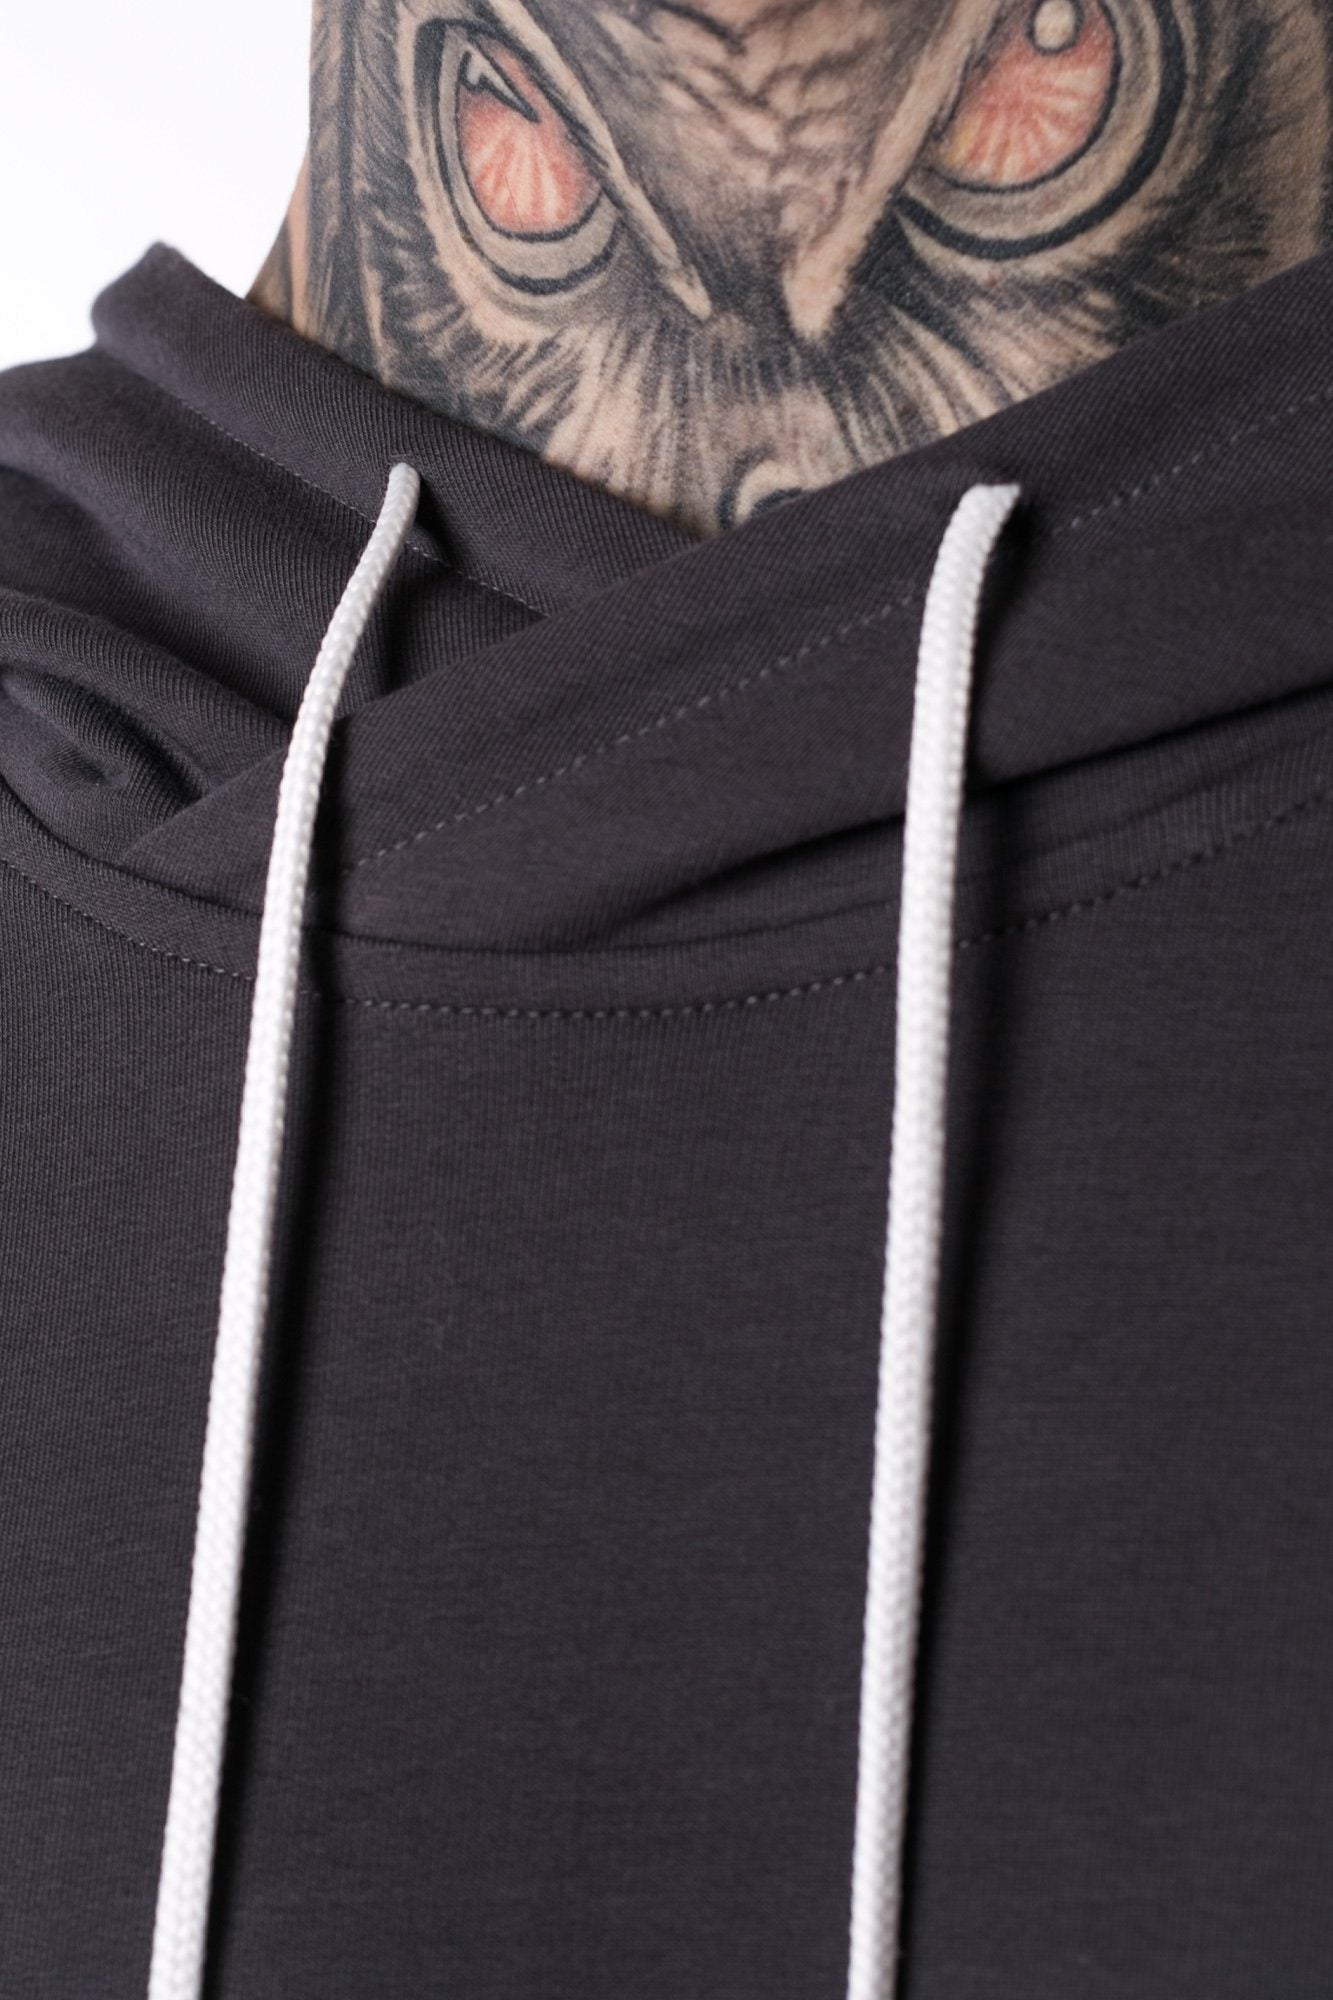 The Man Panelled Hoody 17 // charcoal